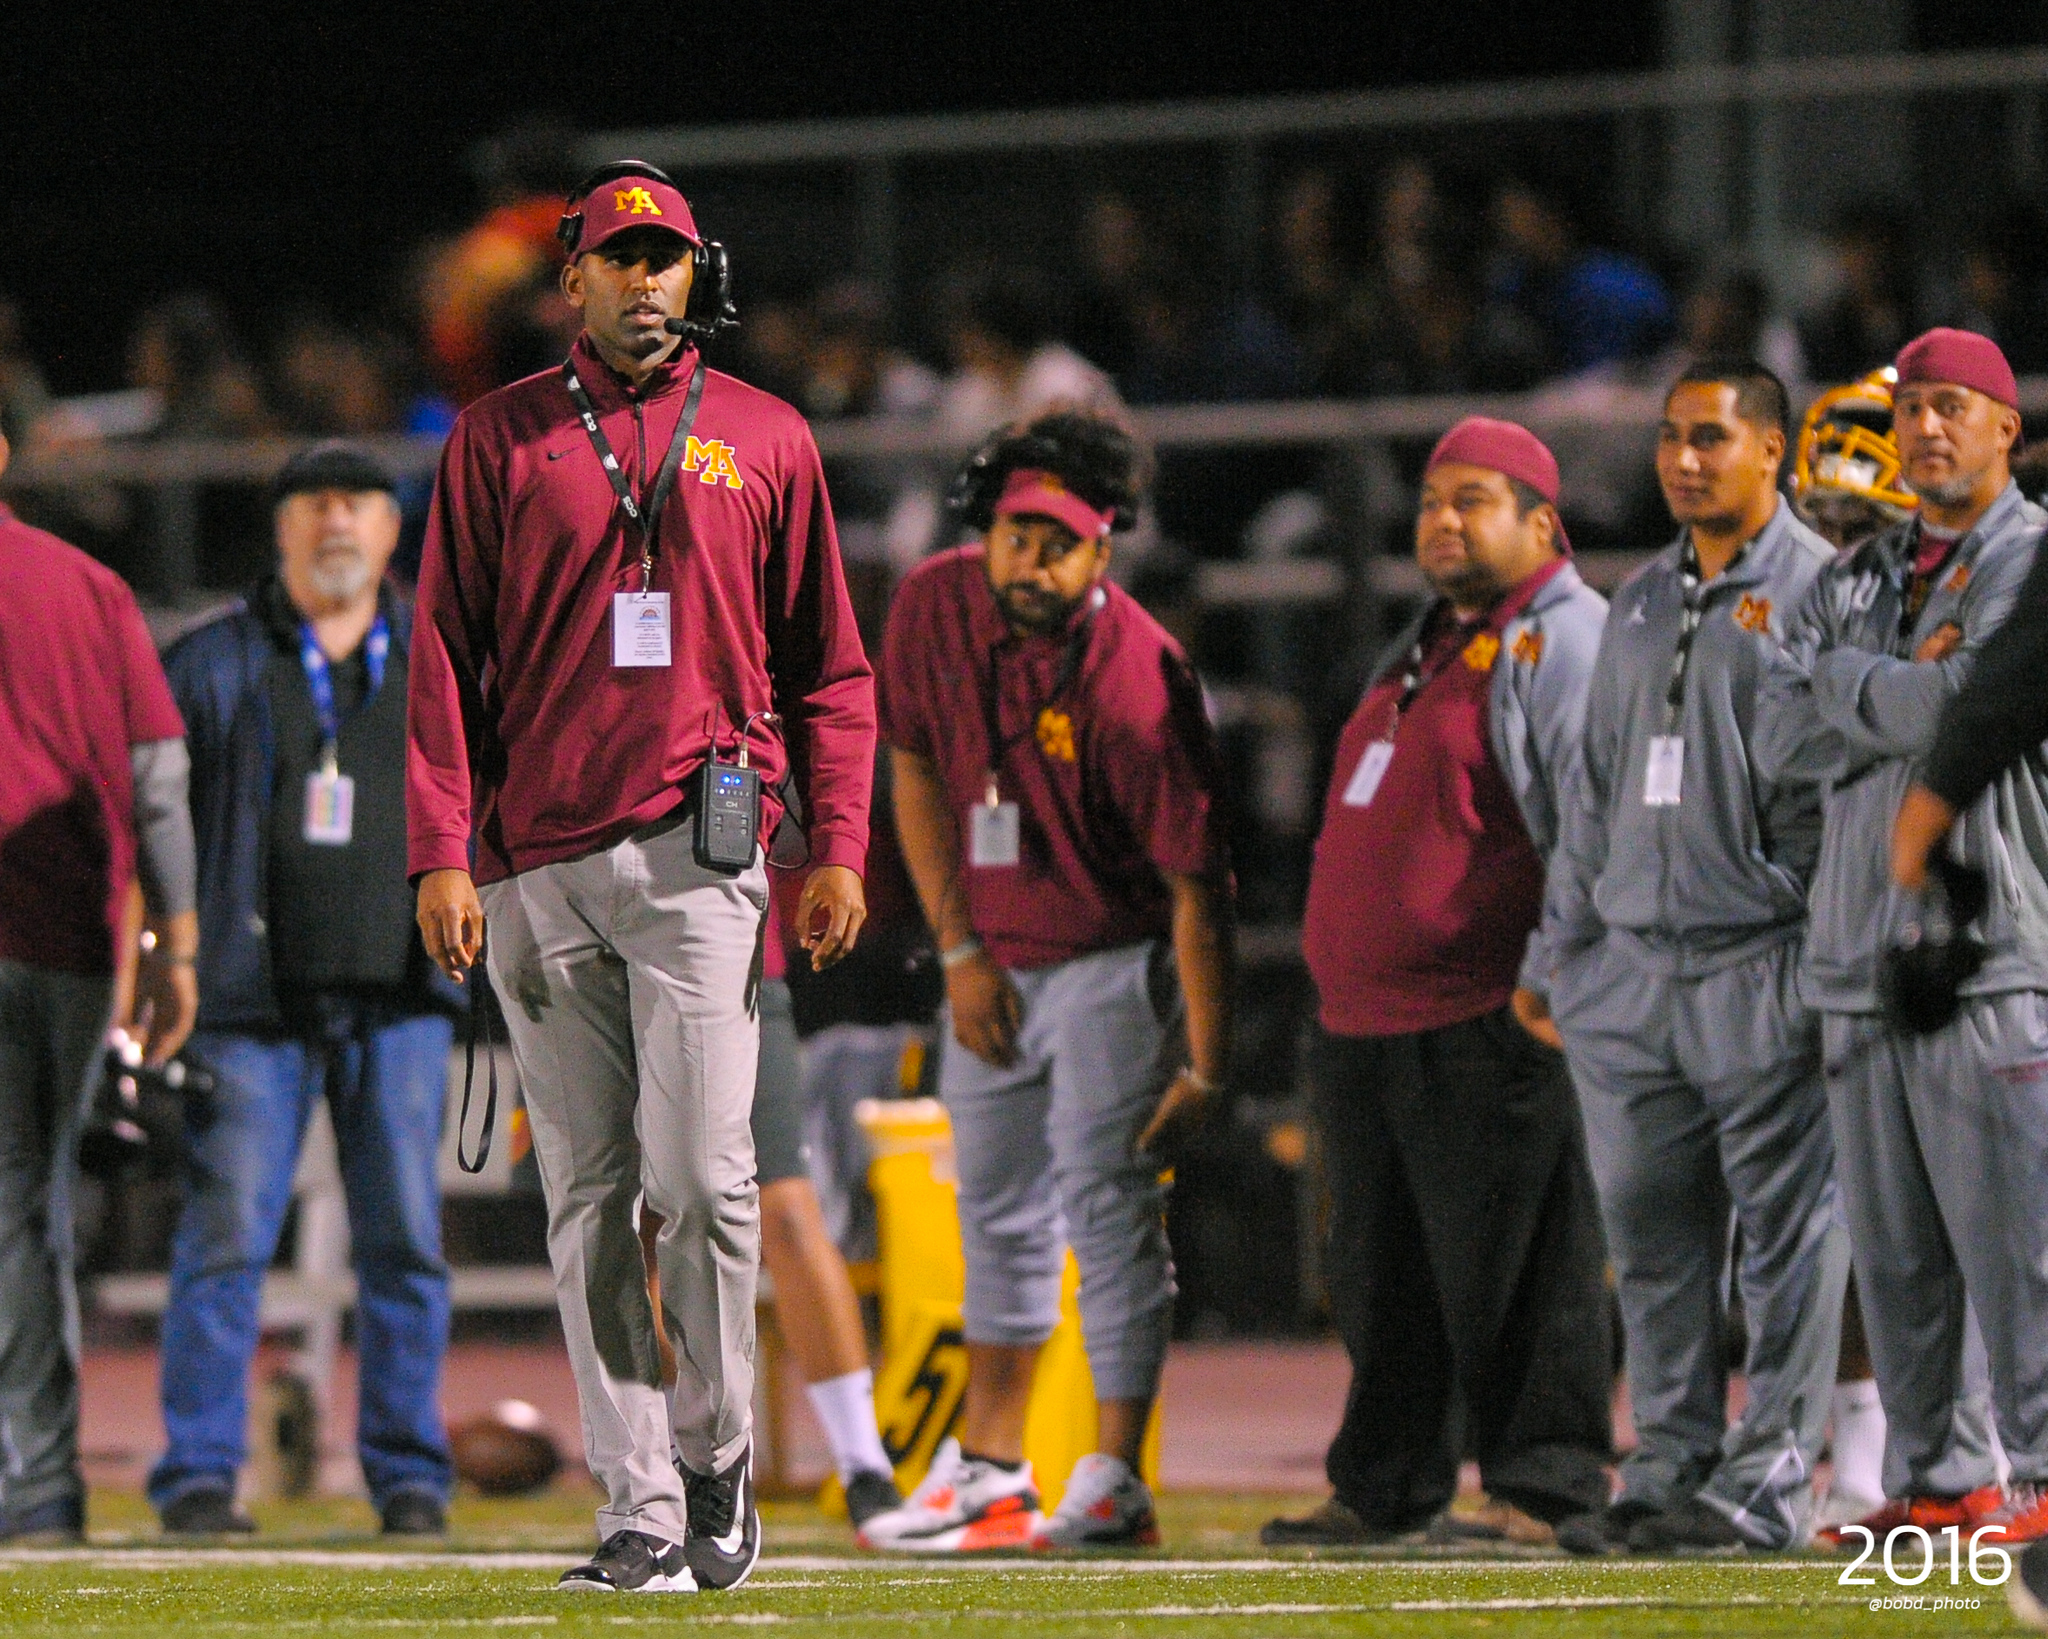 Coach Adhir Announces Departure from M-A Football, Concluding a Historic Four-Year Run